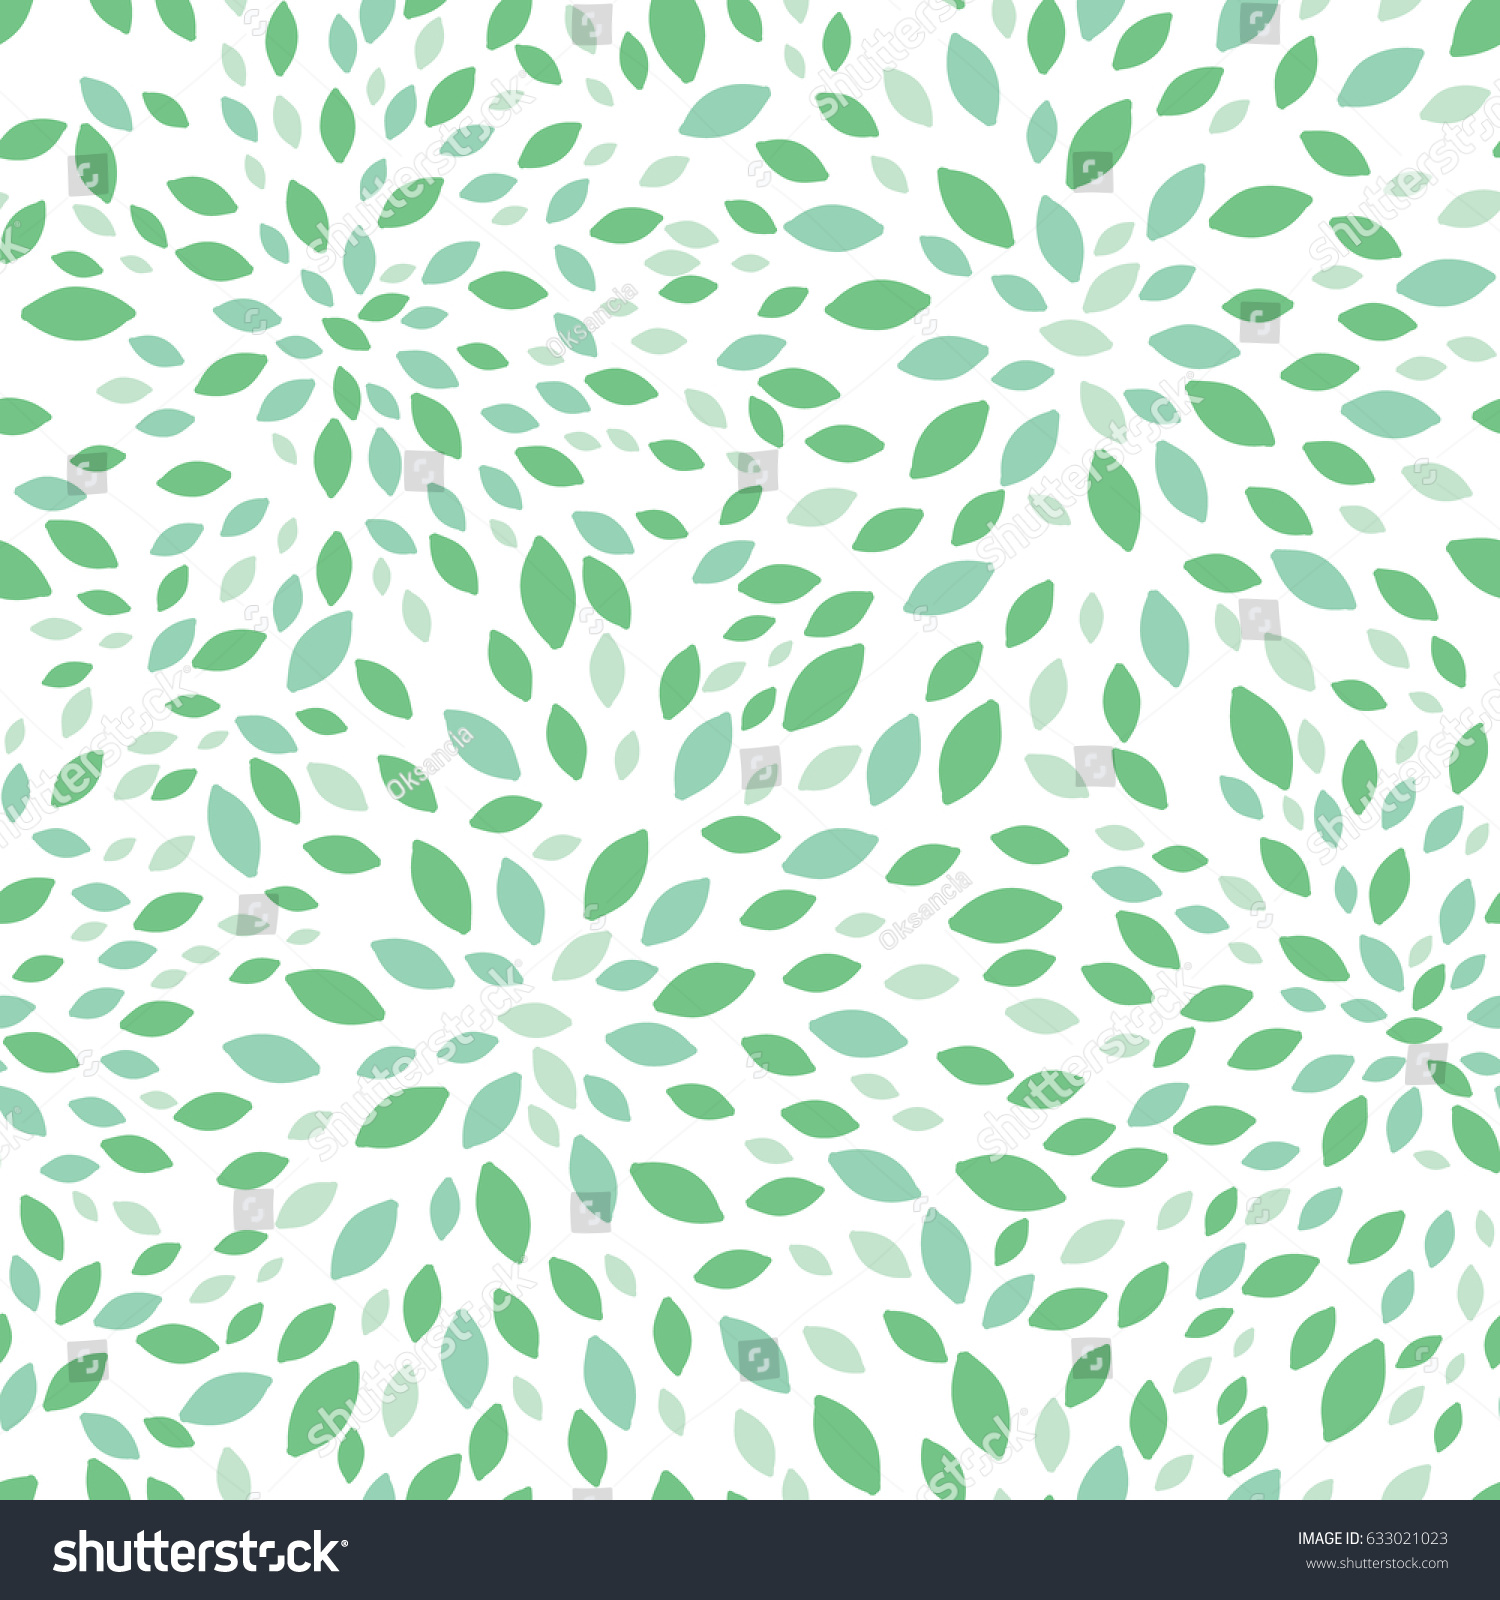 Vector Spring Green Leaves Bursts Seamless Stock Vector ...